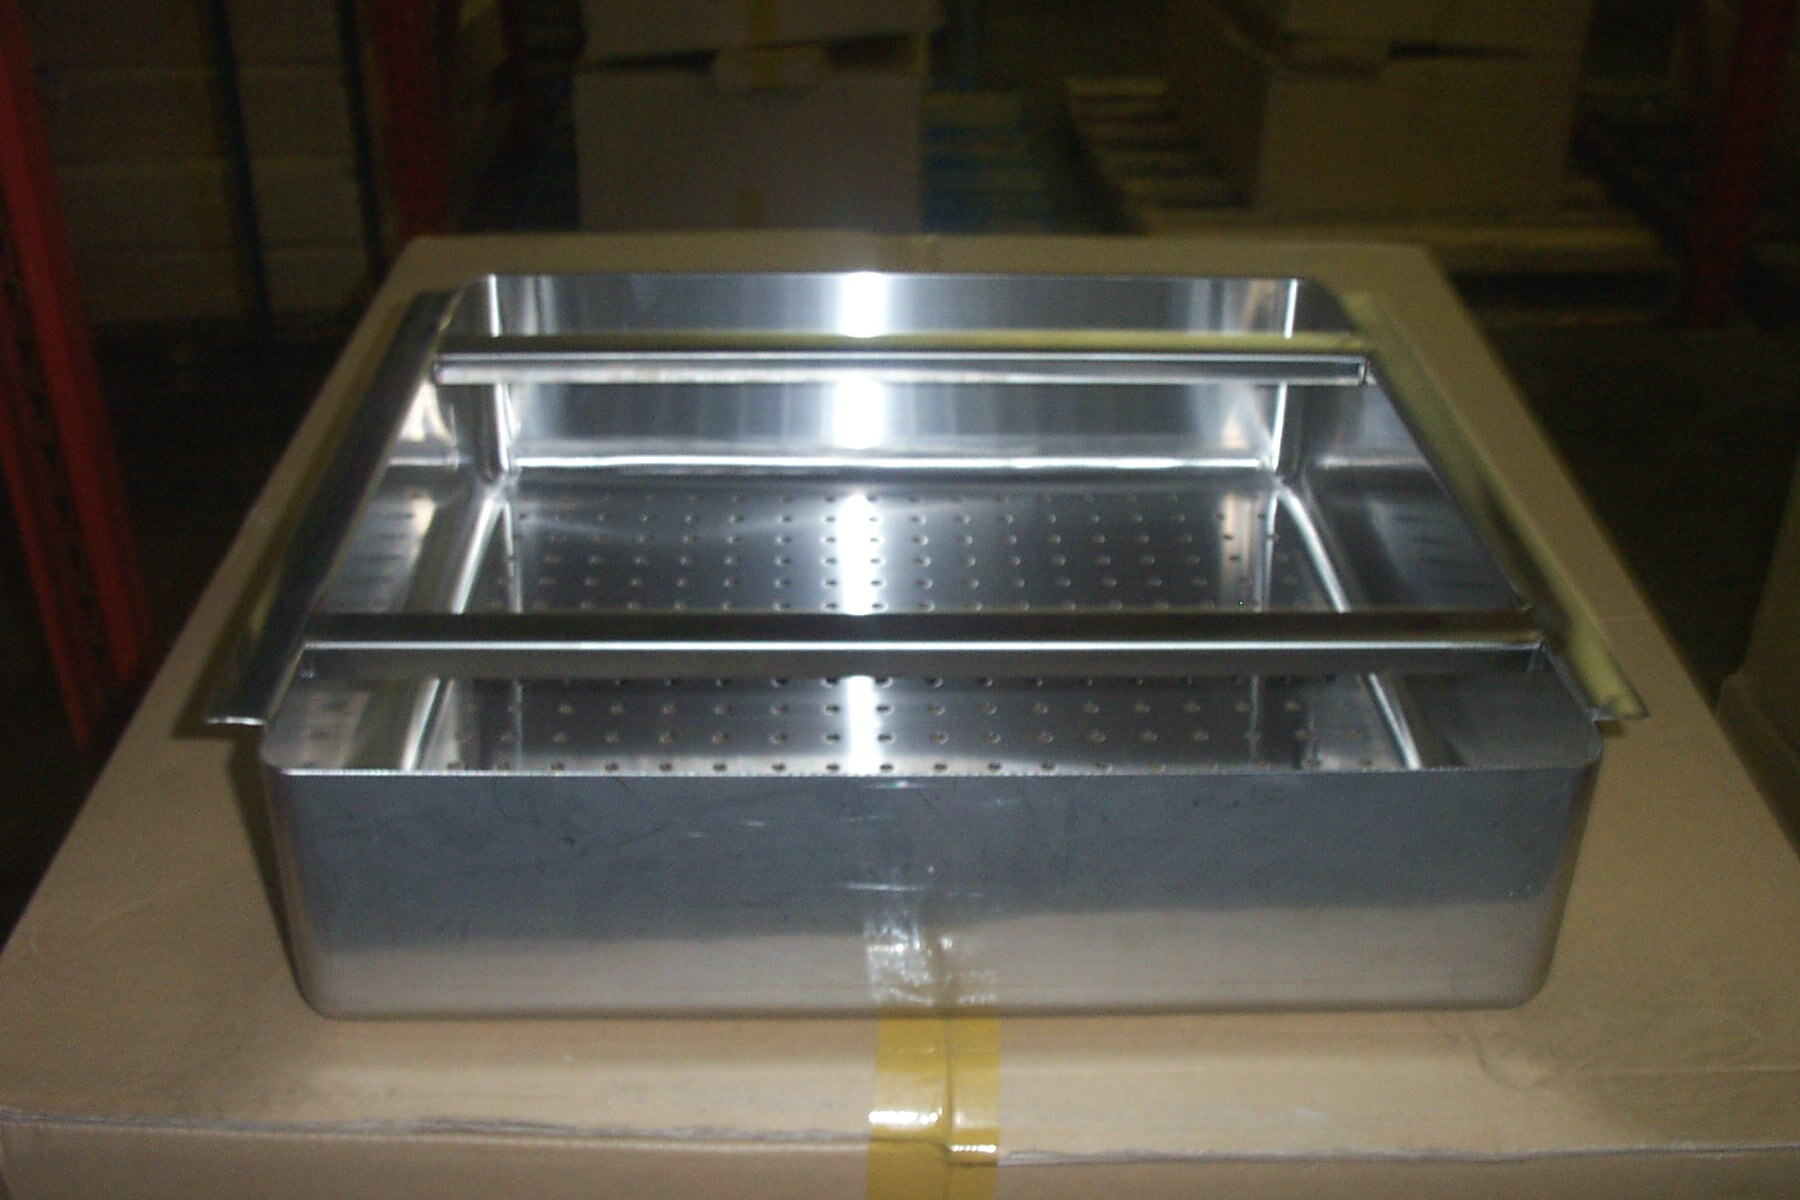 stainless steel scrap basket soiled table